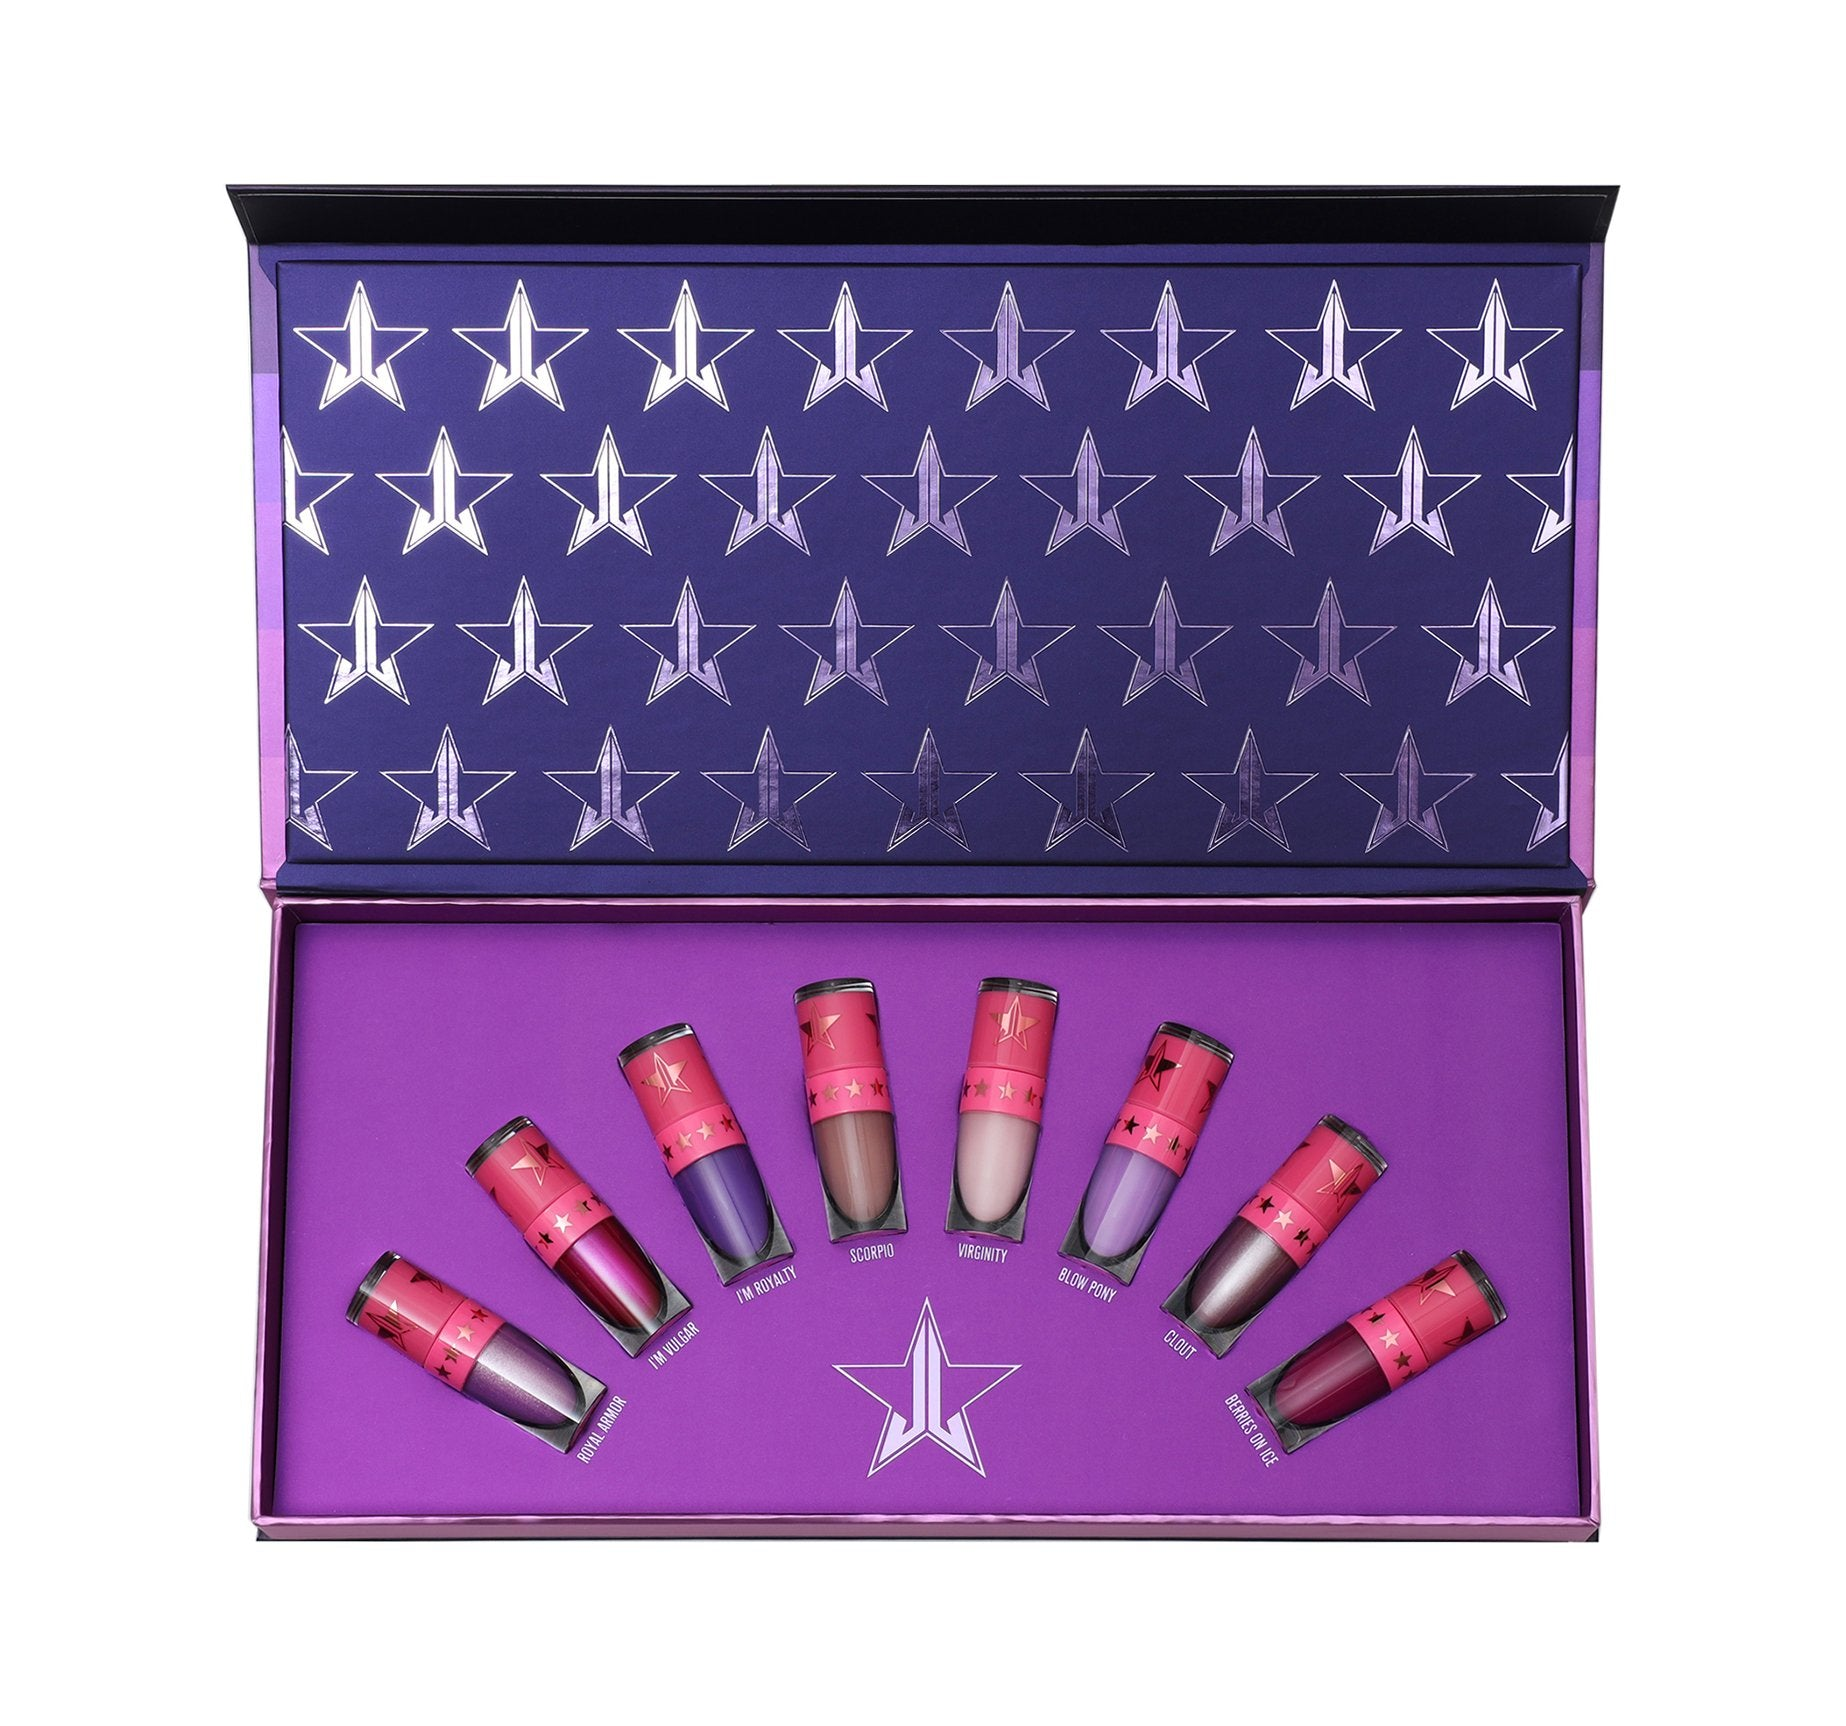 BLOOD LUST MINI VELOUR LIQUID LIPSTICK BUNDLE, view larger image